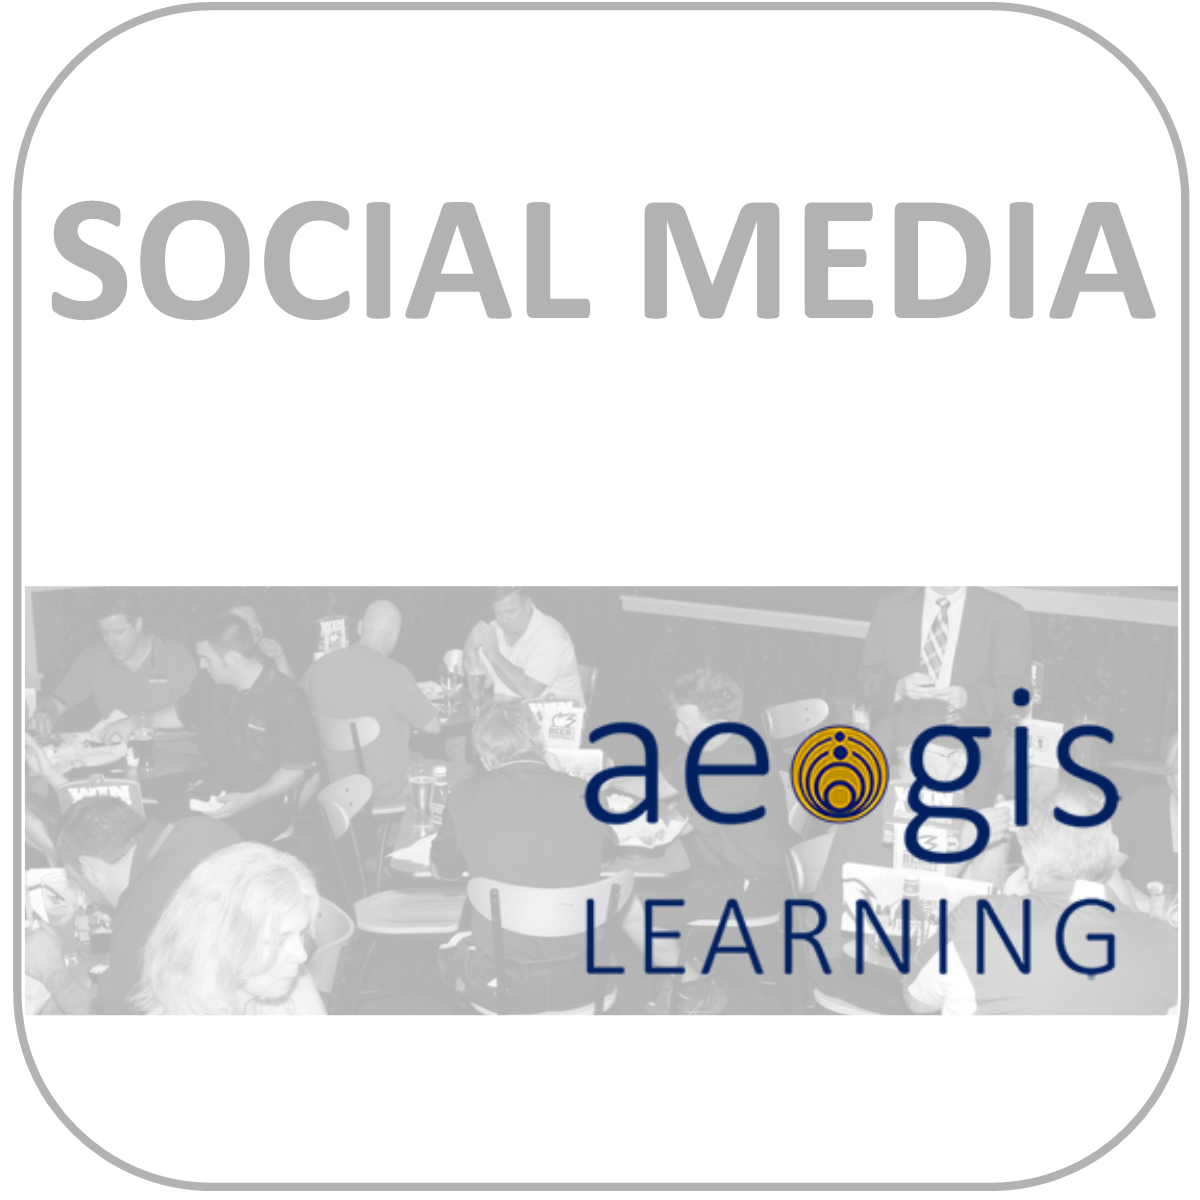 Social Media and Networking for Professionals from Aegis Learning